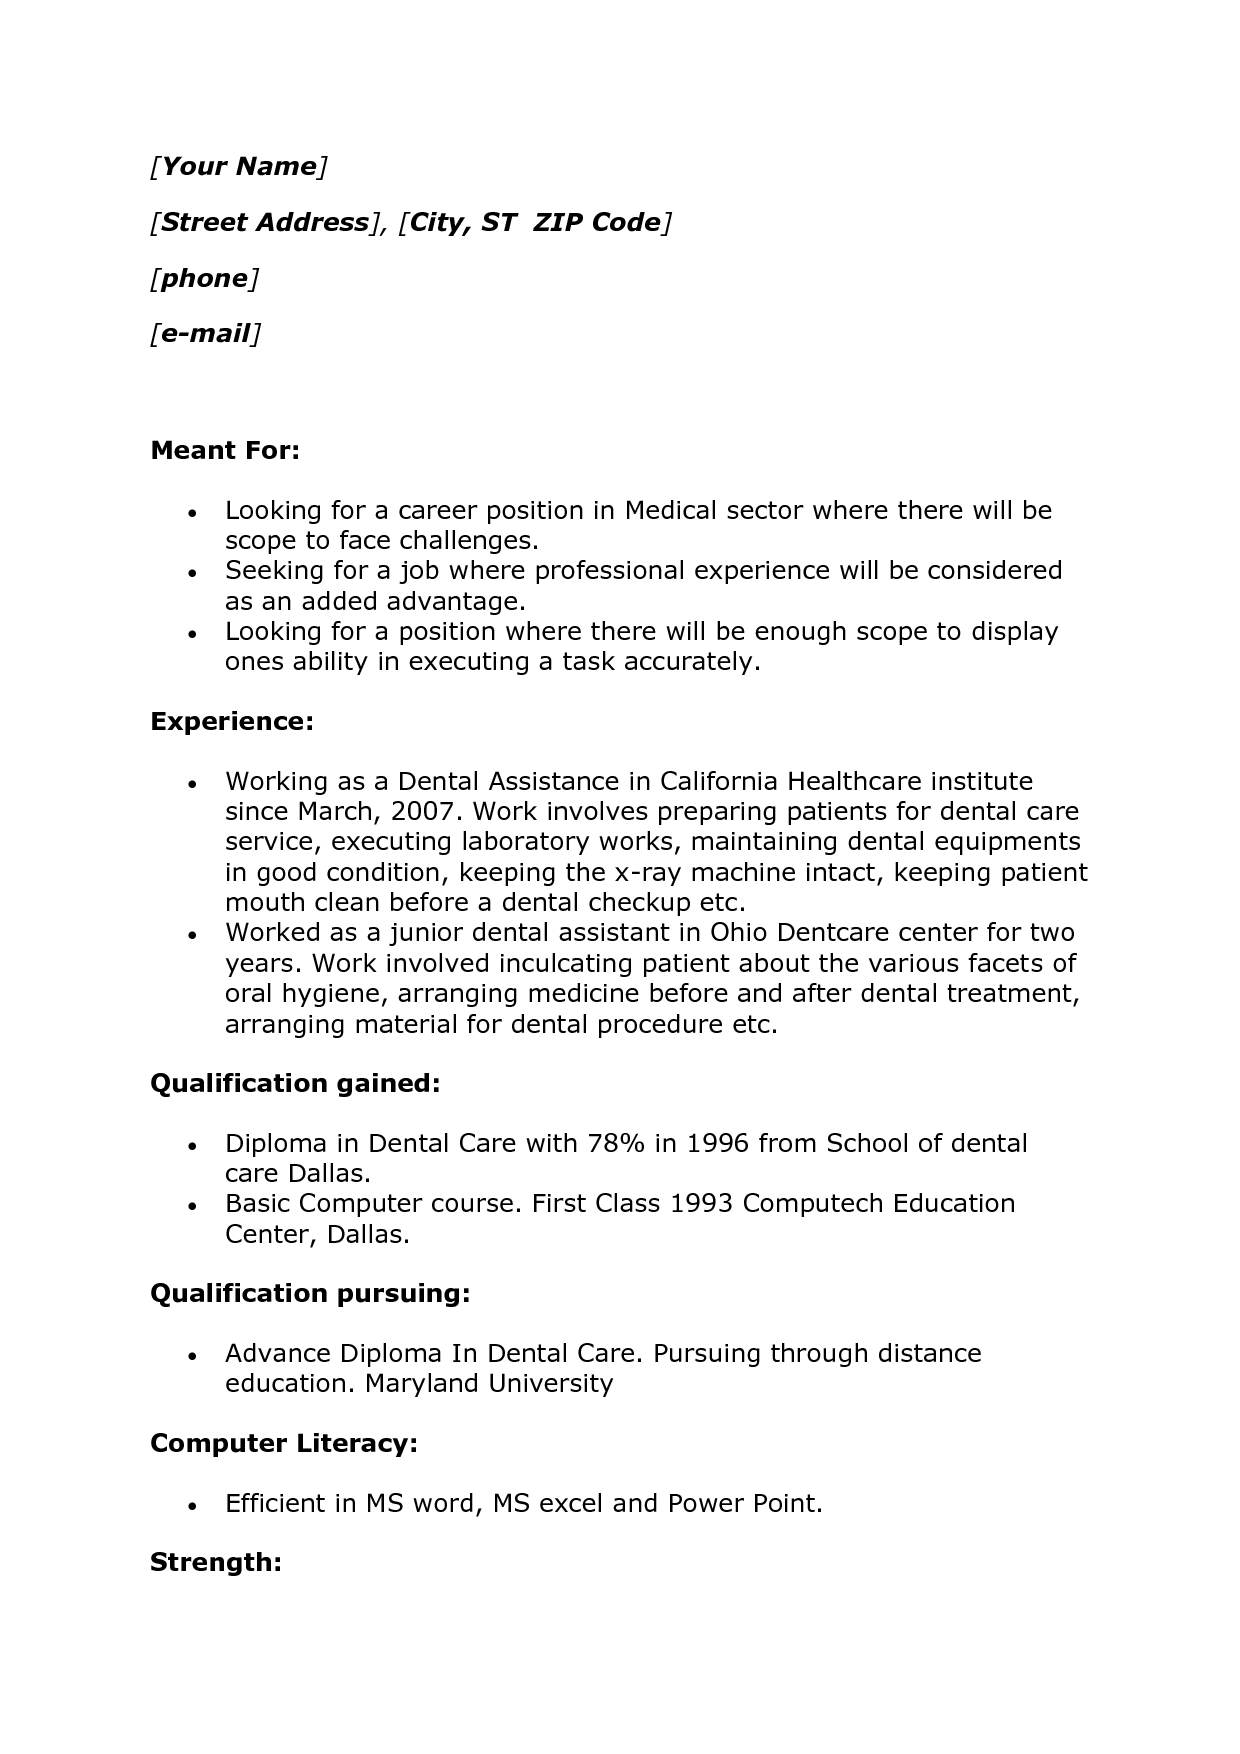 Dental Assistant Job Description For Resume Photo Dental Assistant Resume Example Images - Resume Template Online